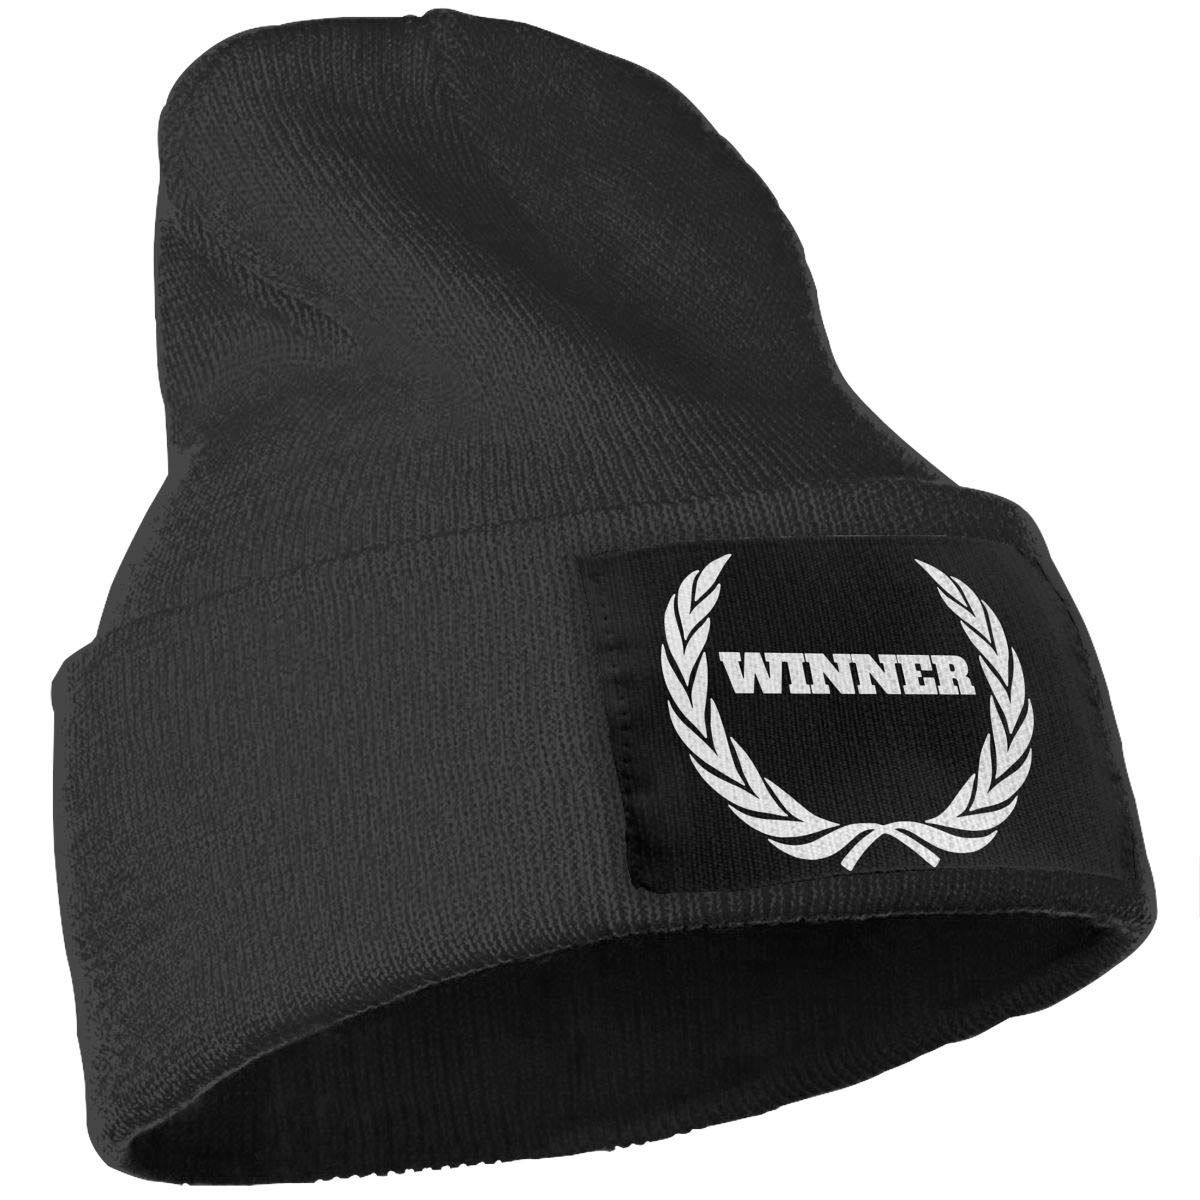 Men//Women Winner Outdoor Stretch Knit Beanies Hat Soft Winter Skull Caps